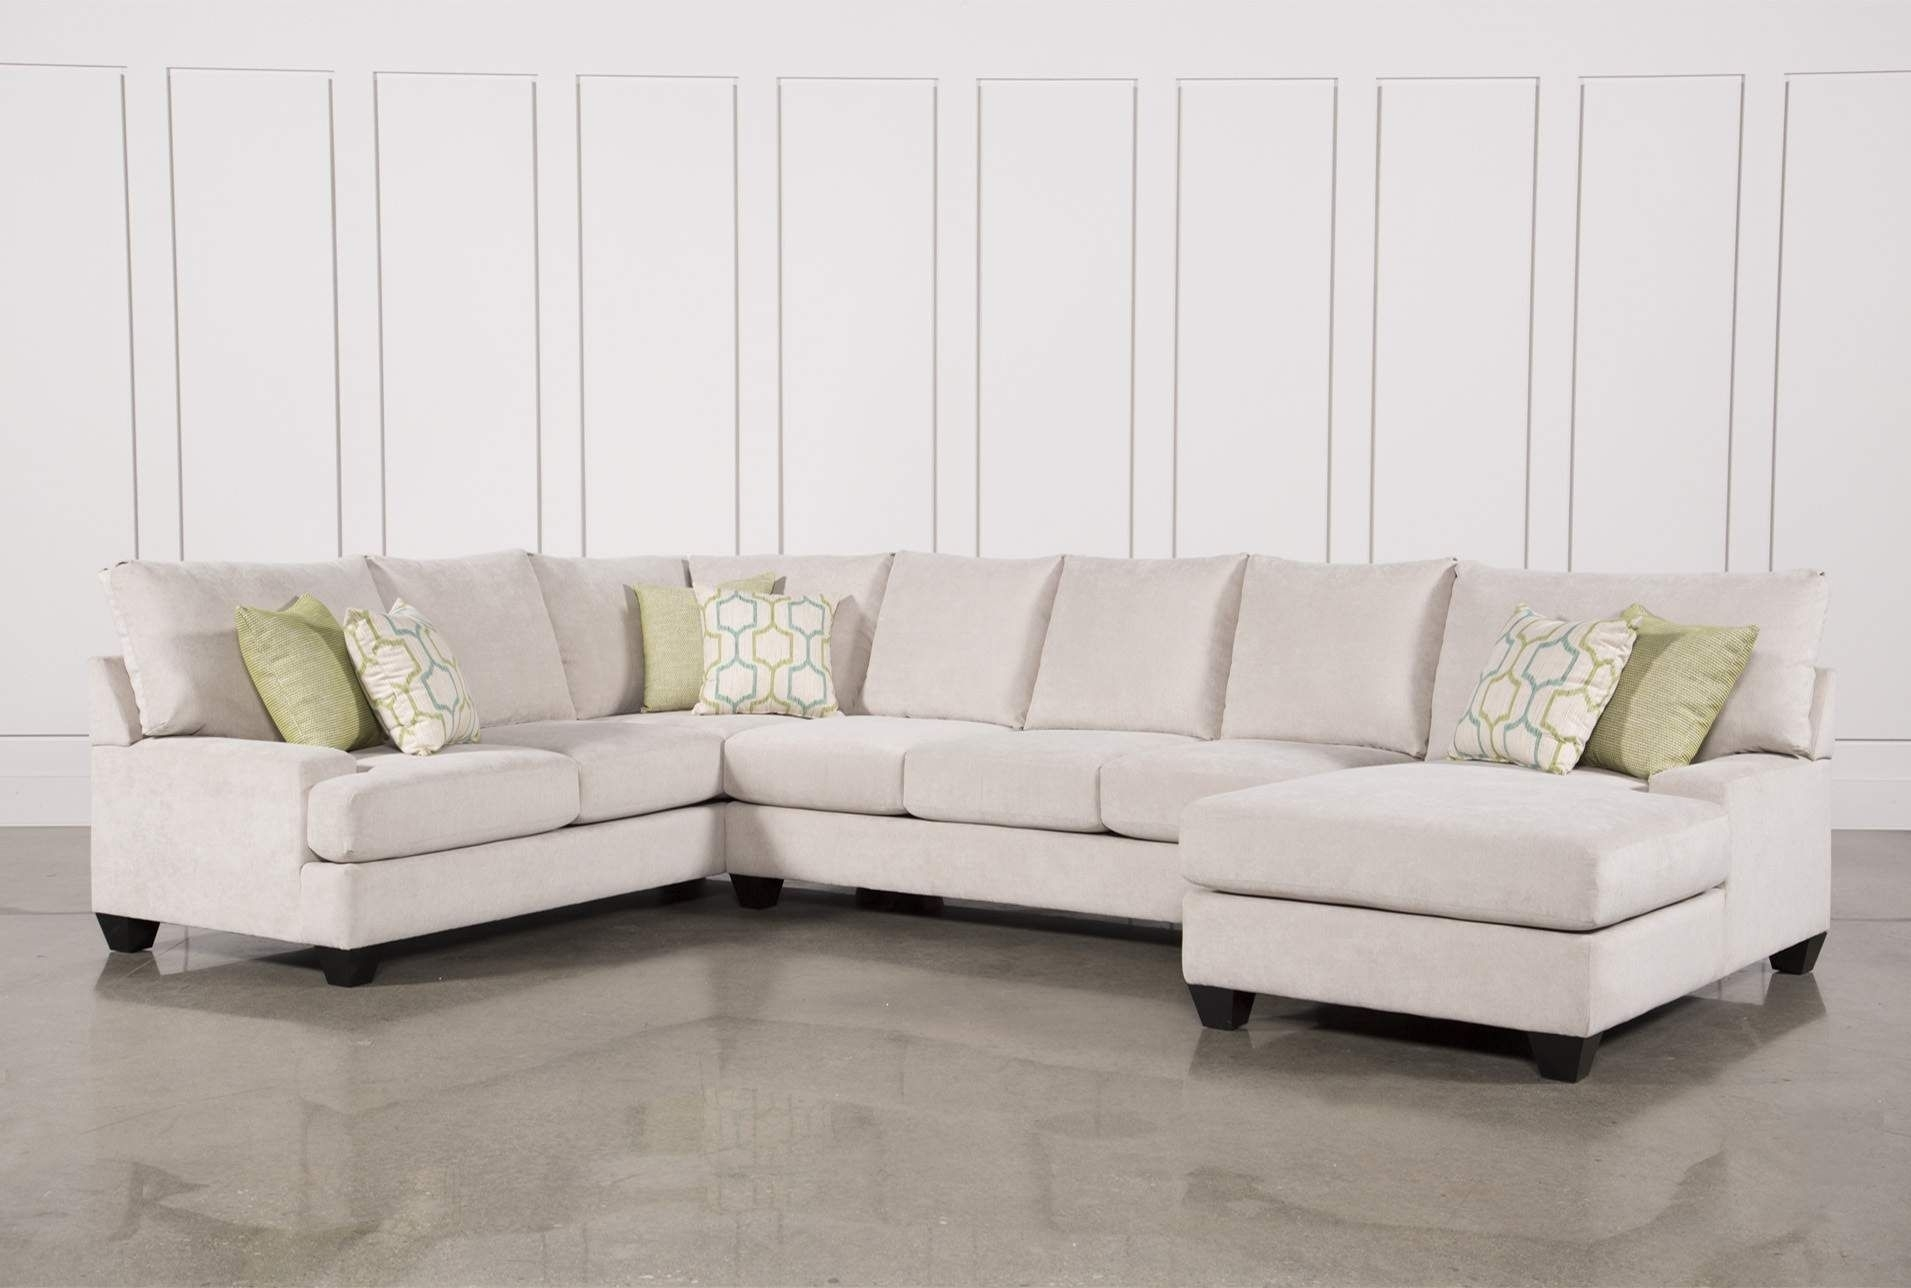 Harper Foam 3 Piece Sectional W/raf Chaise in Meyer 3 Piece Sectionals With Laf Chaise (Image 12 of 30)